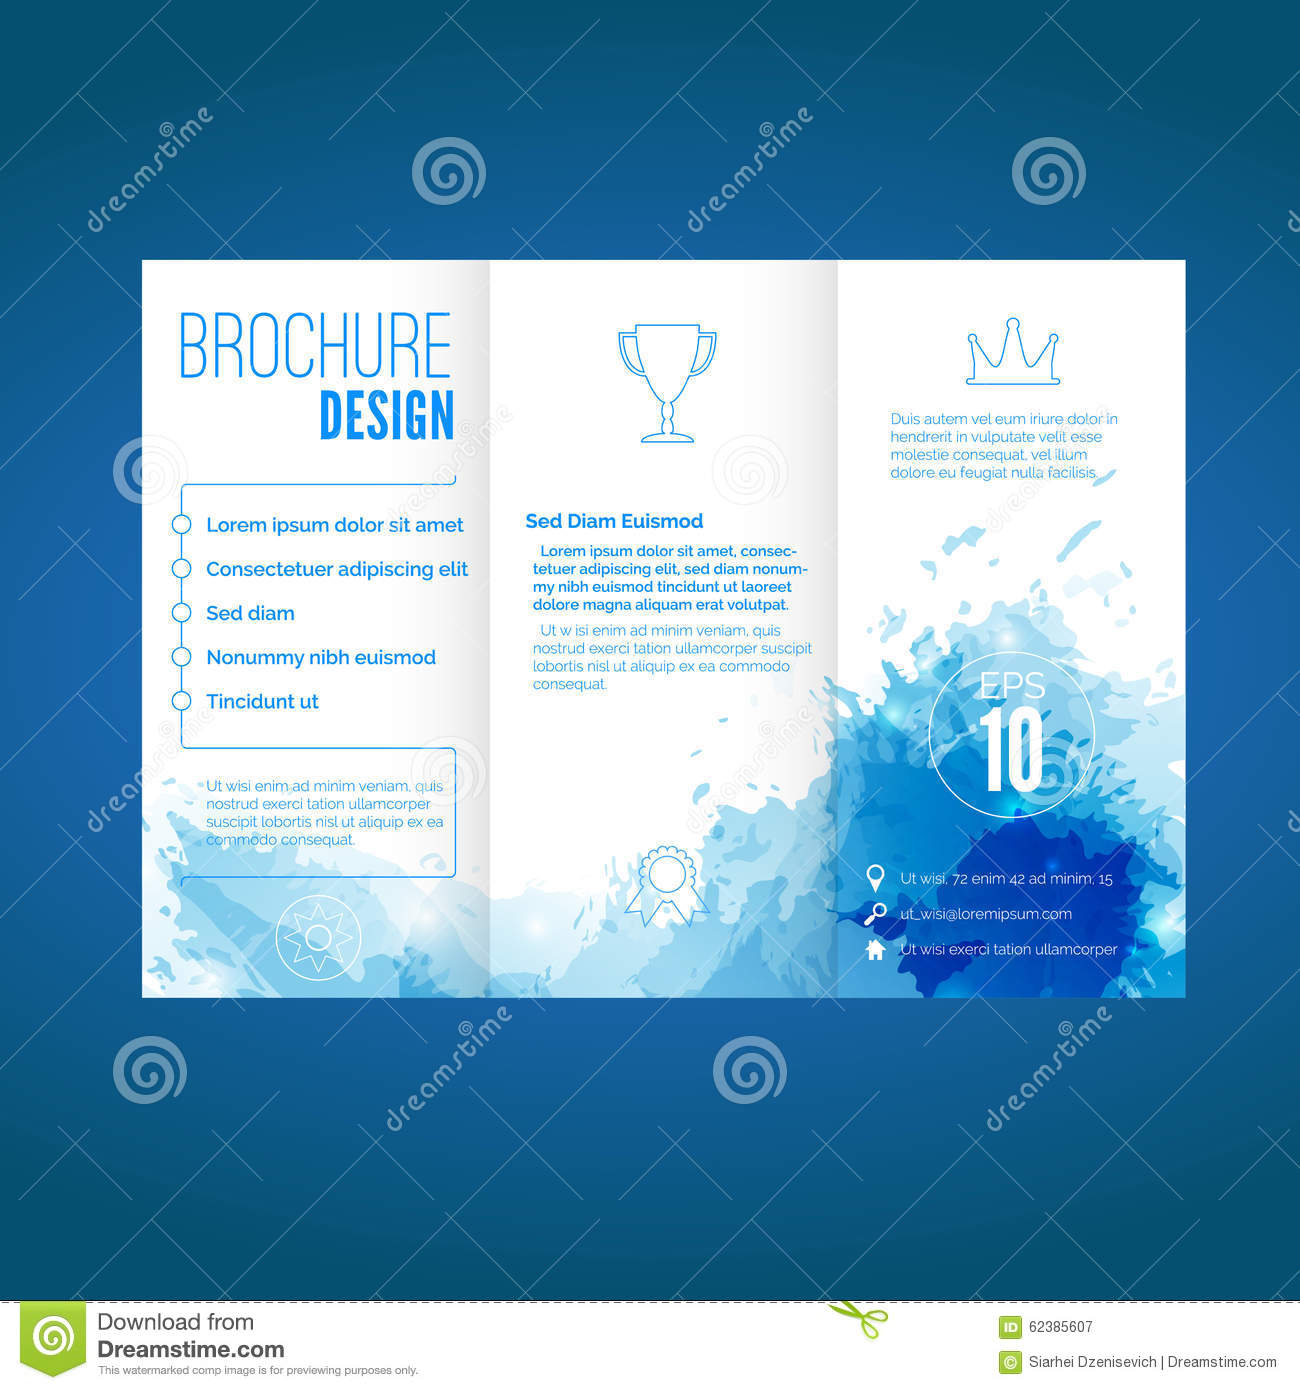 Modern brochure design with watercolor pattern